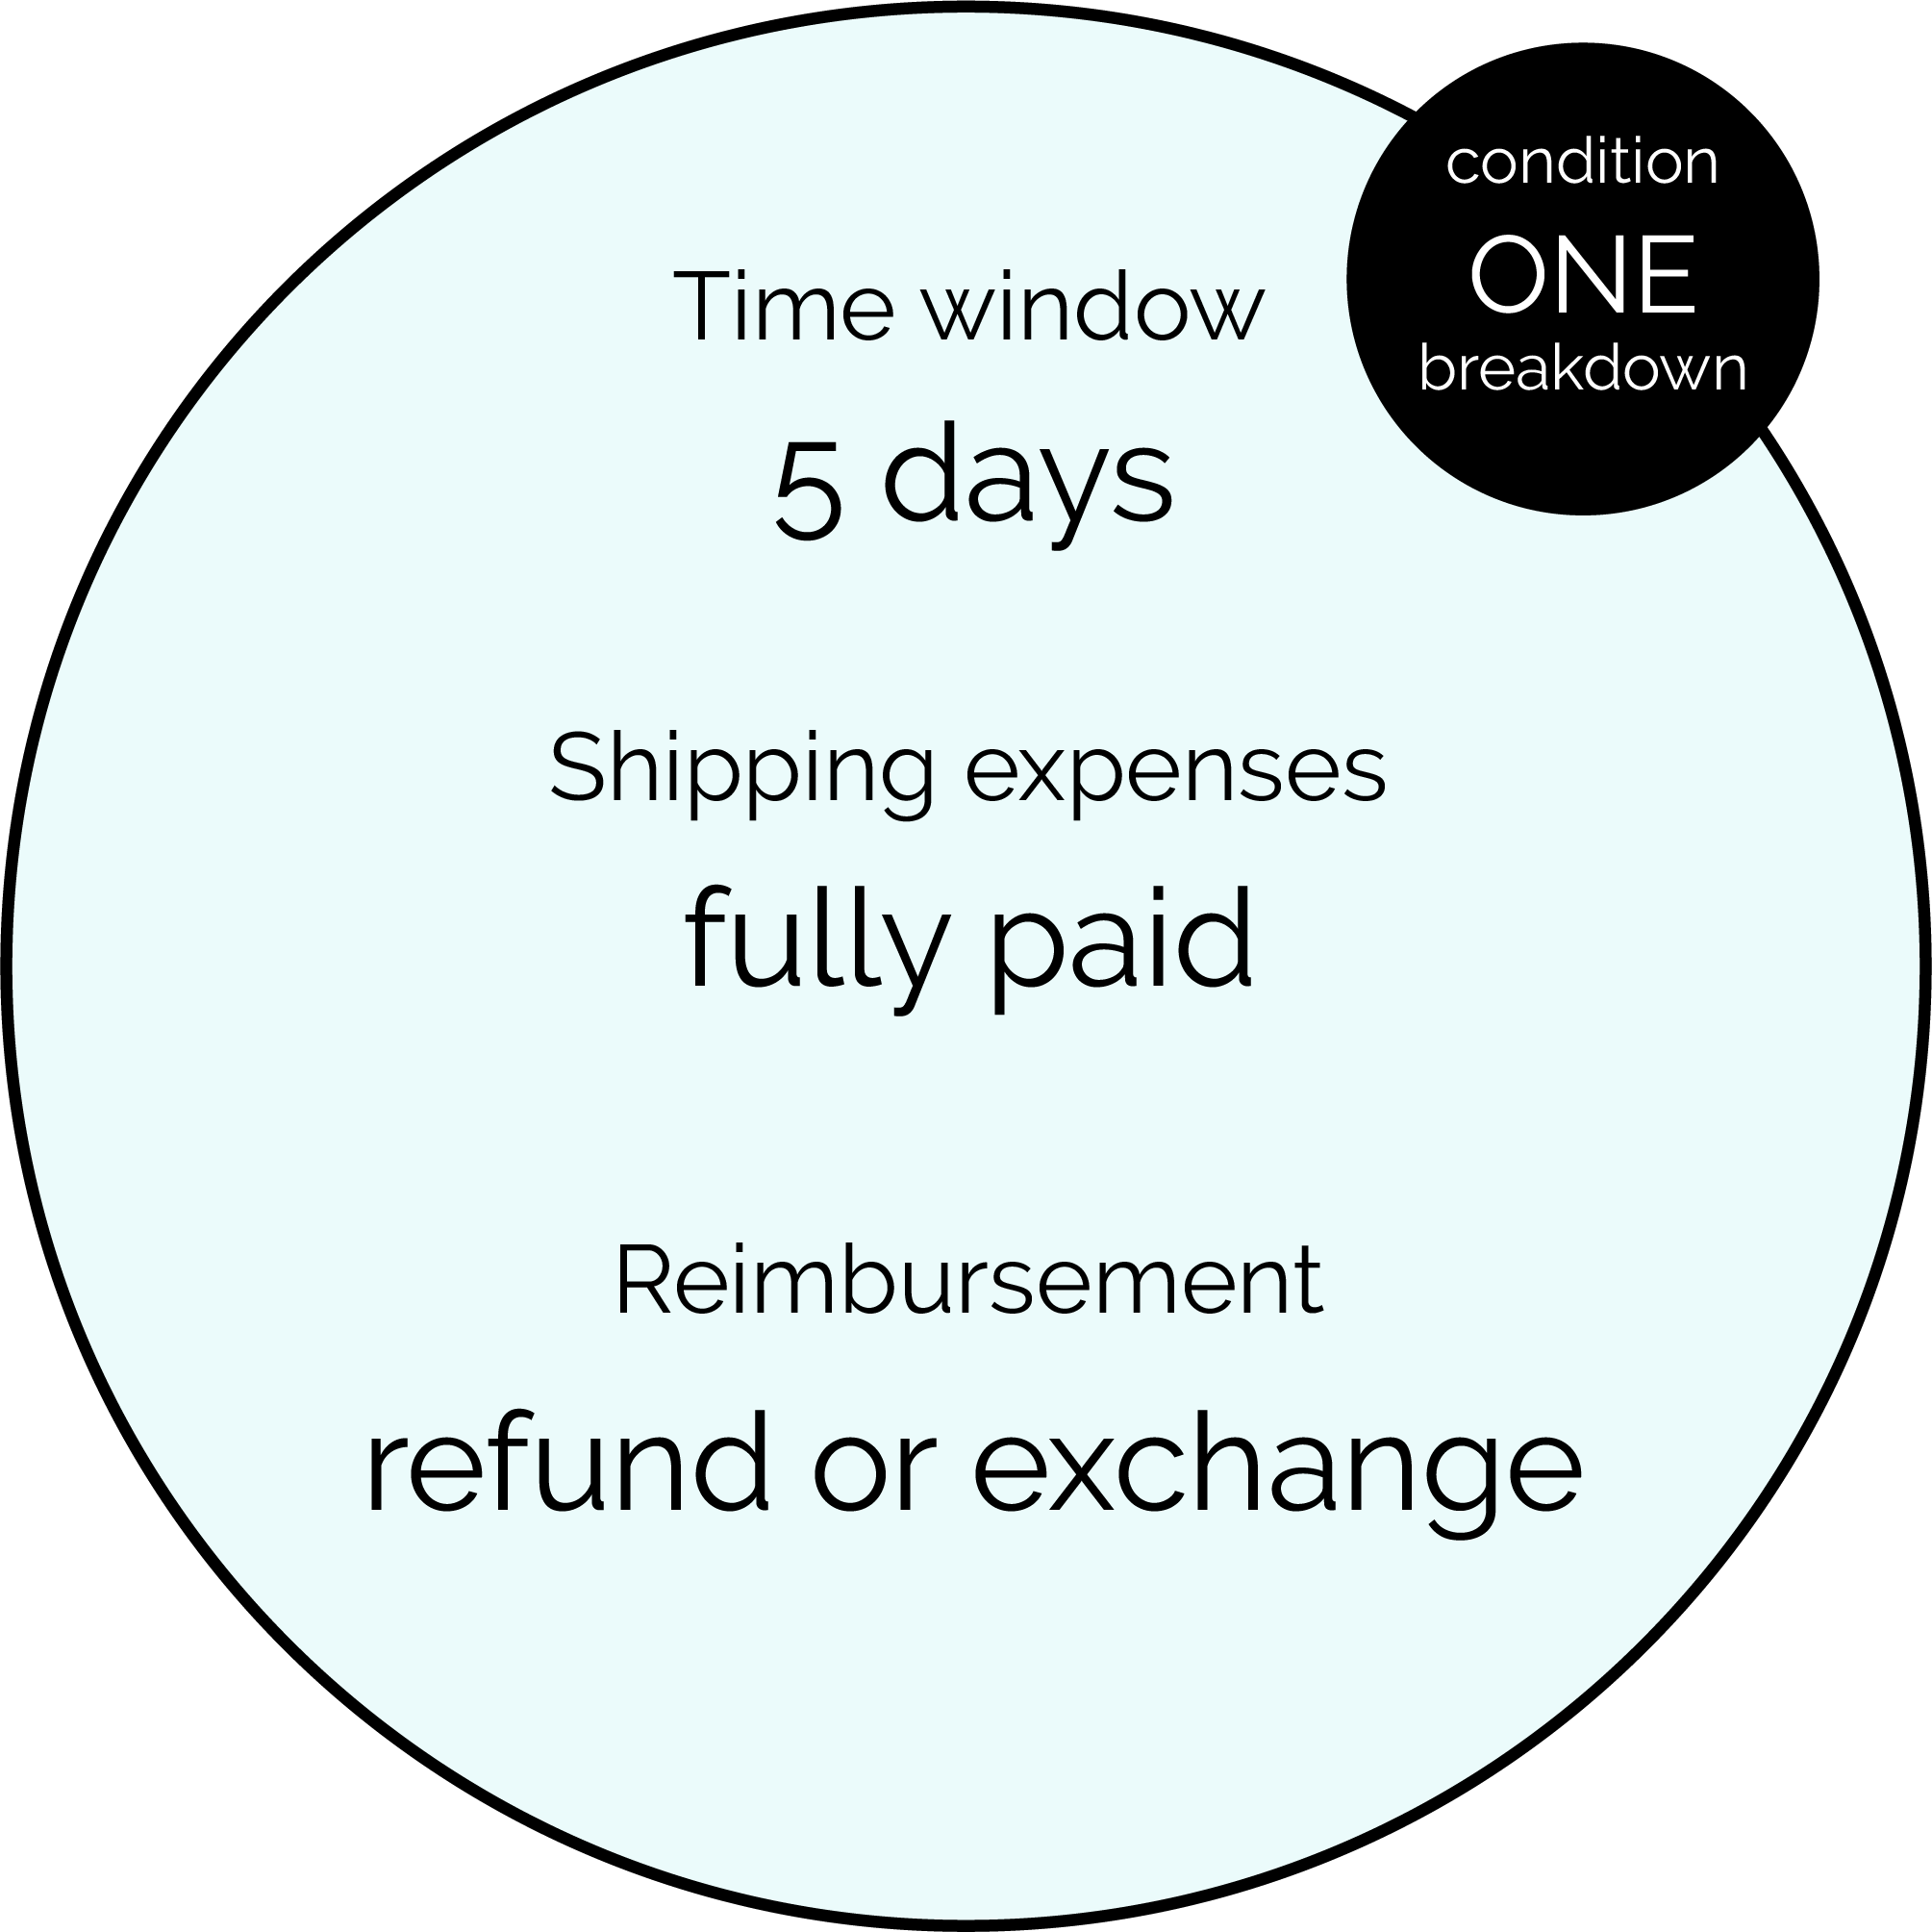 Condition one breakdown - Time window: 5-days, Shipping expenses: fully paid, Reimbursement: refund or exchange.